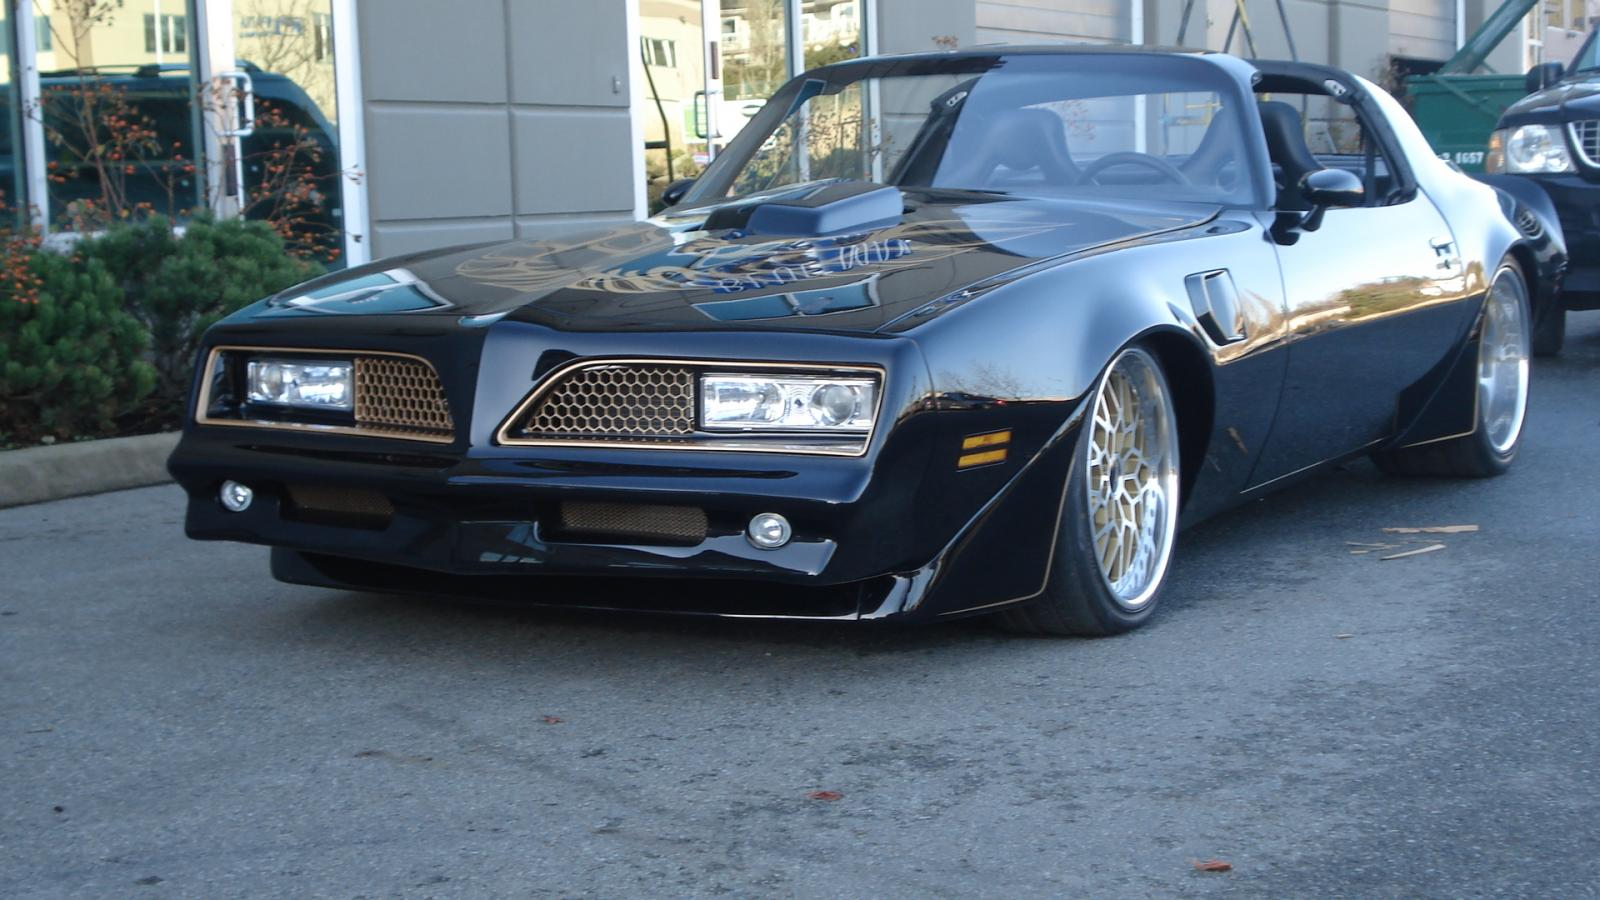 trans am - Page 4